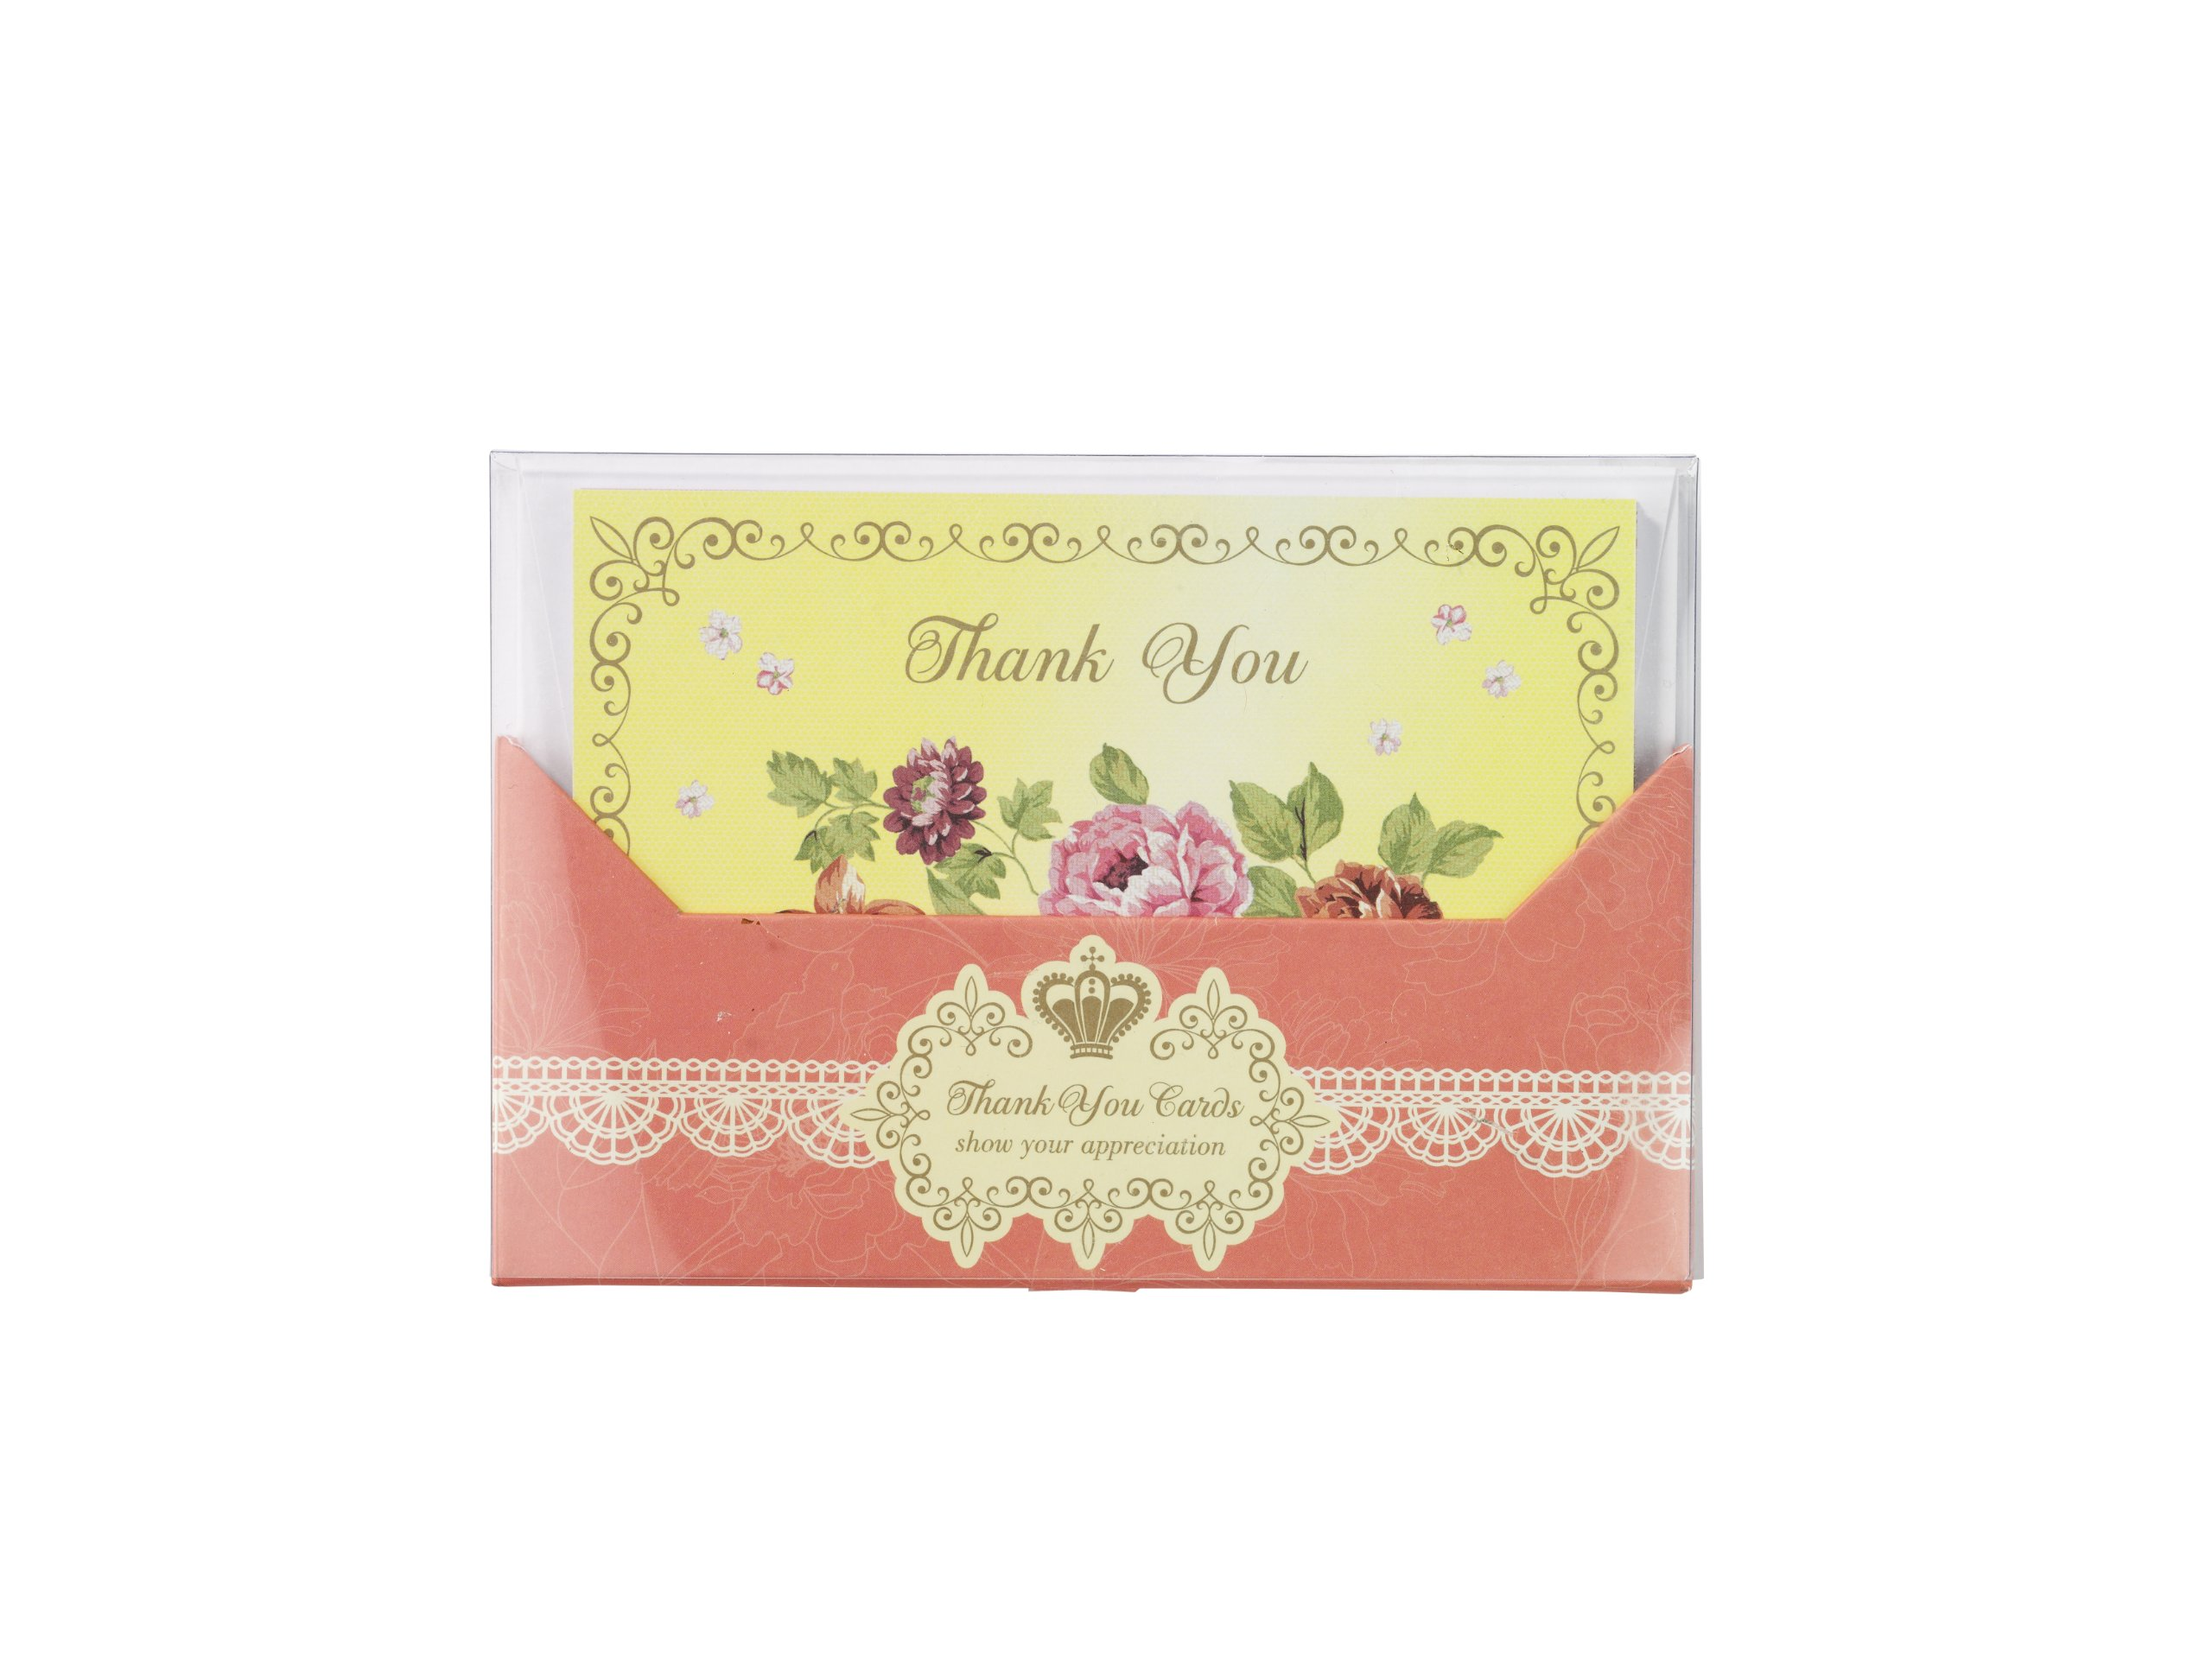 Talking Tables Truly Scrumptious Thank-you Cards for a Birthday or General Celebration, Multicolor